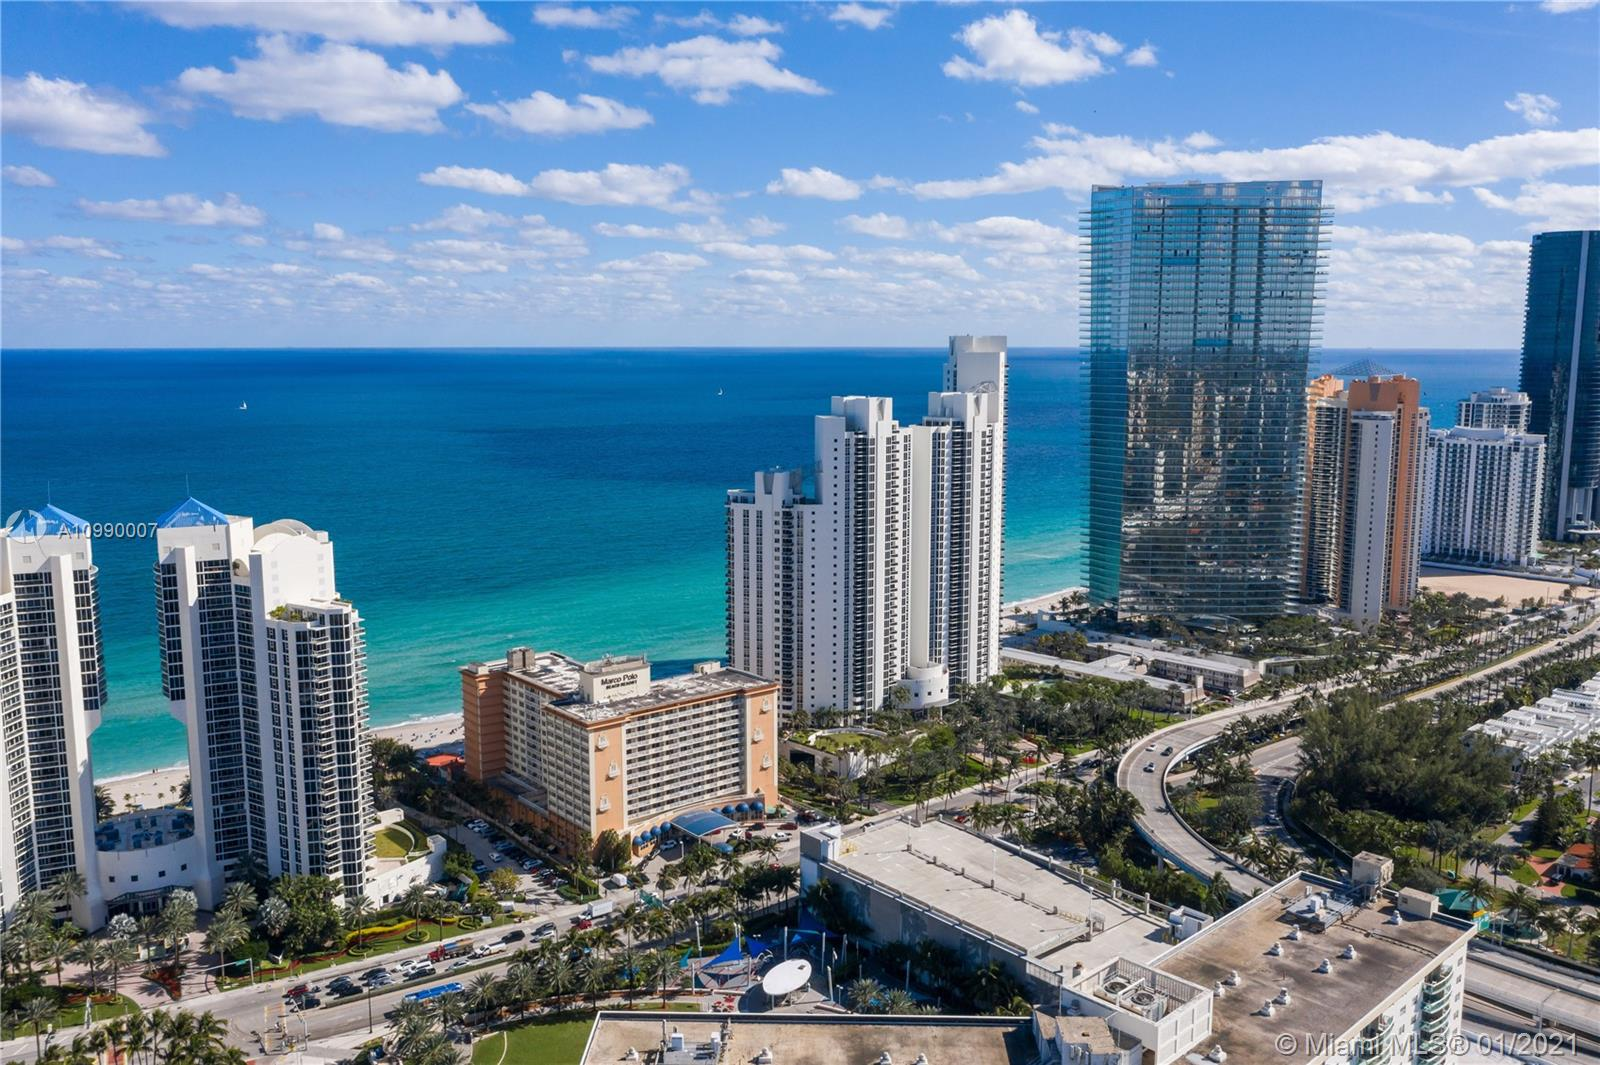 19370  COLLINS AVE #CU3 For Sale A10990007, FL